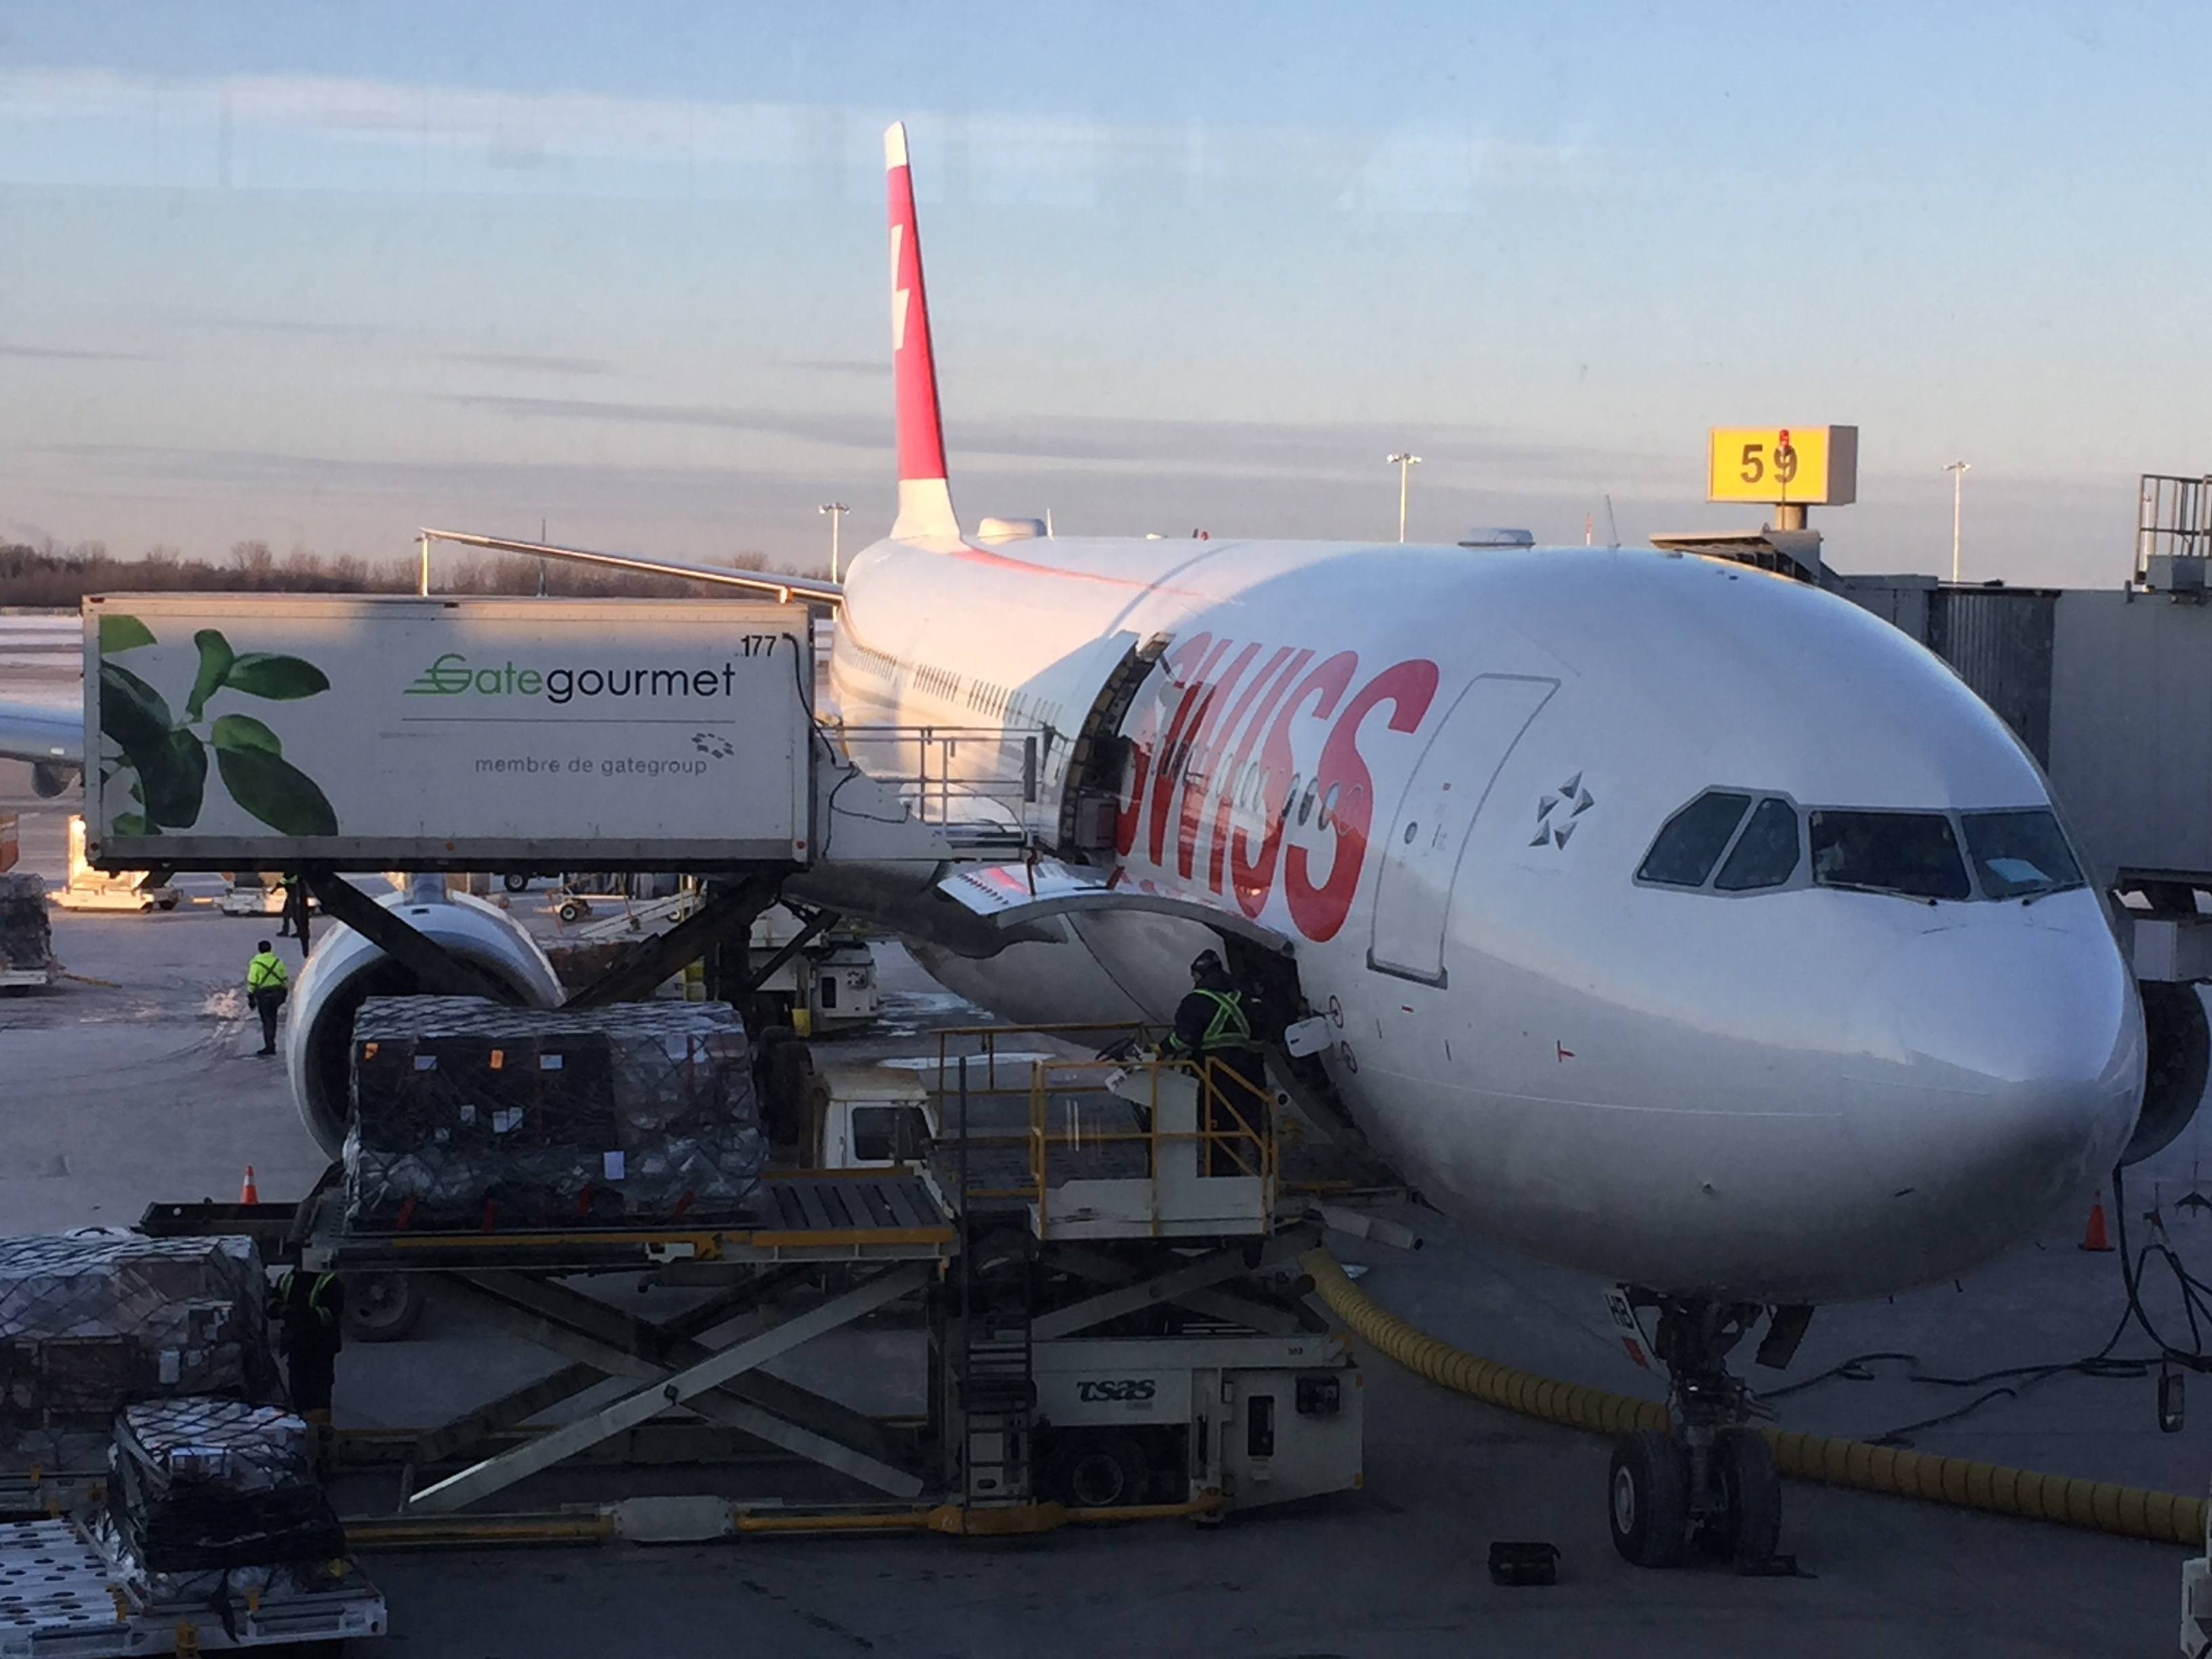 Swiss Airlines A330 aircraft at the gate - Montreal Trudeau Airport YUL